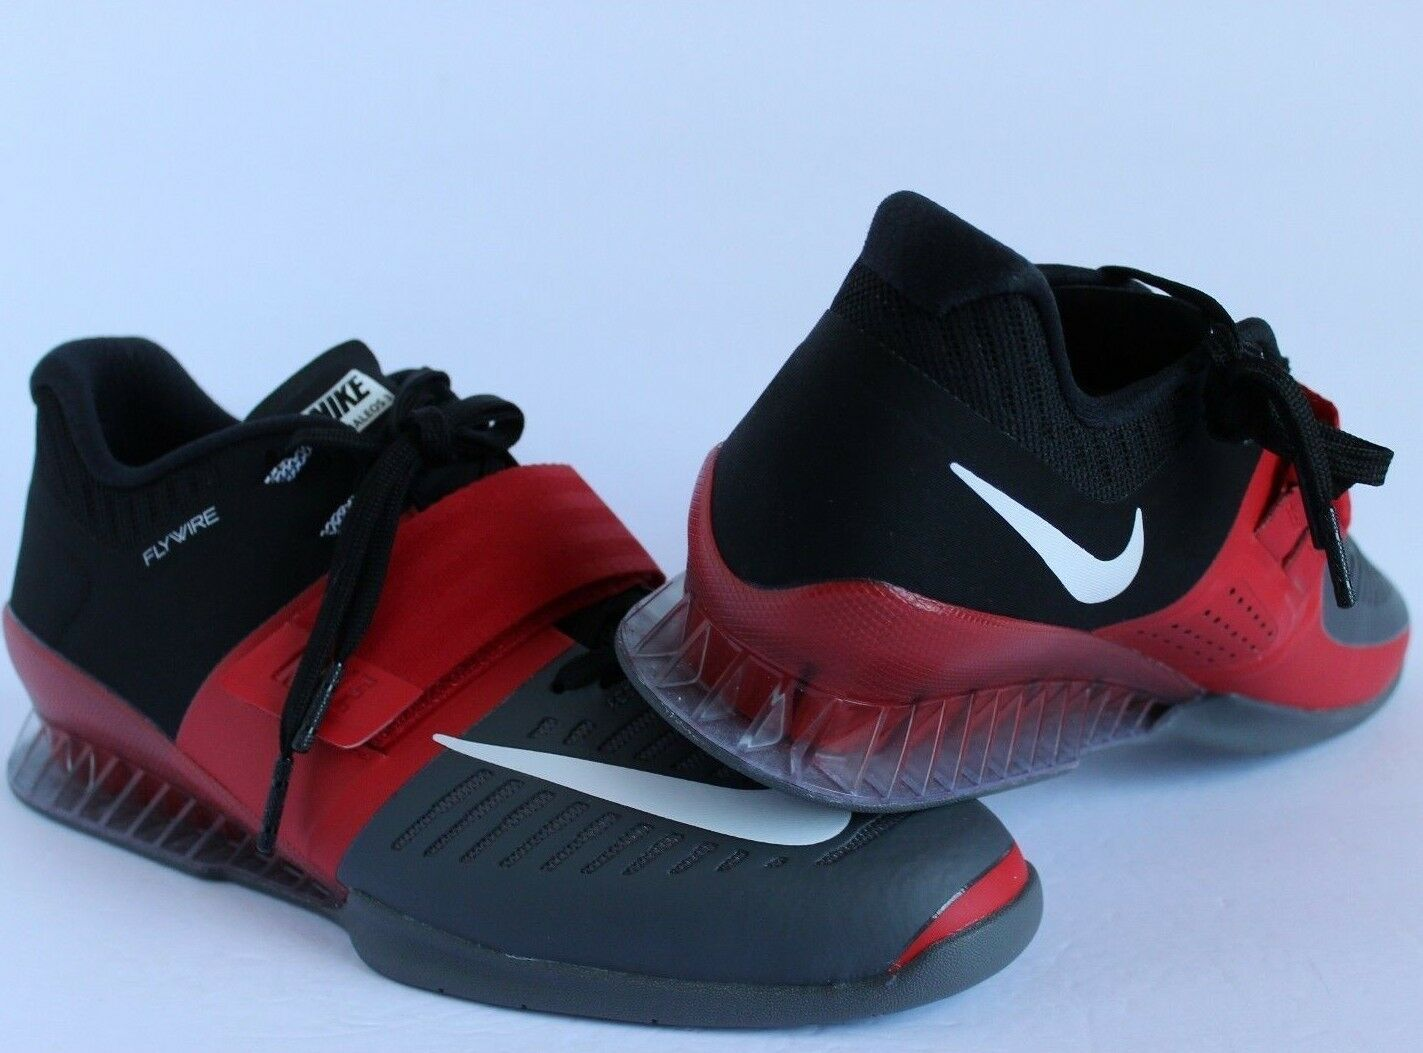 New Sz 12 Mens Nike Romaleos 3 Black Red Crossfit Weightlifting Shoes 852933-600